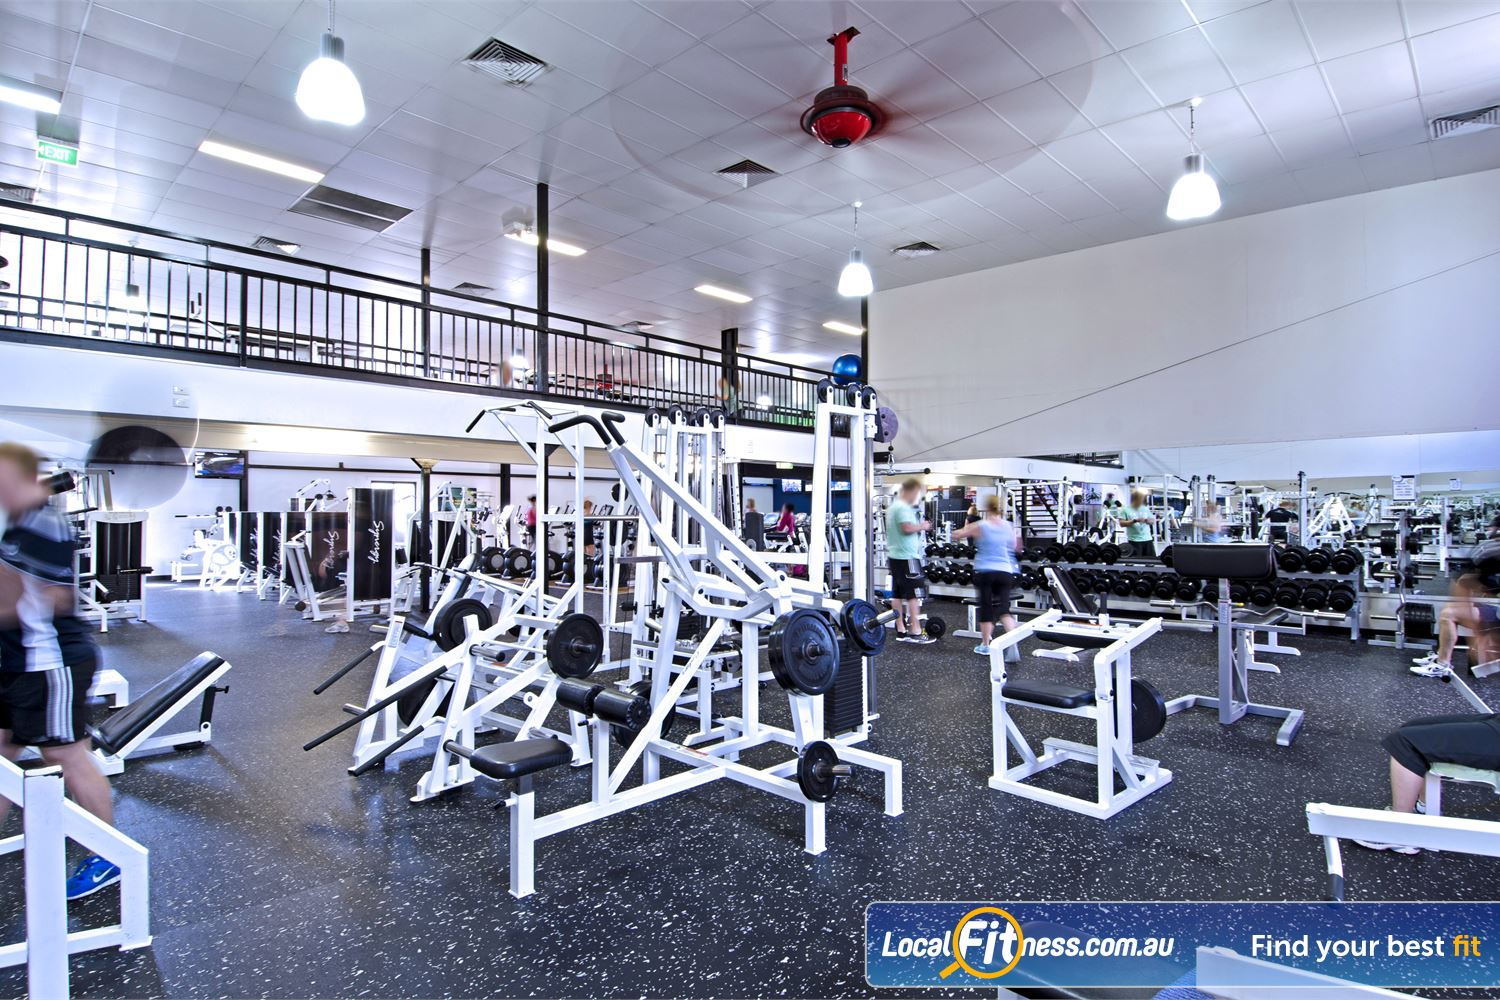 Goodlife Health Clubs Near Sherwood Featuring multiple plate-loading machines.